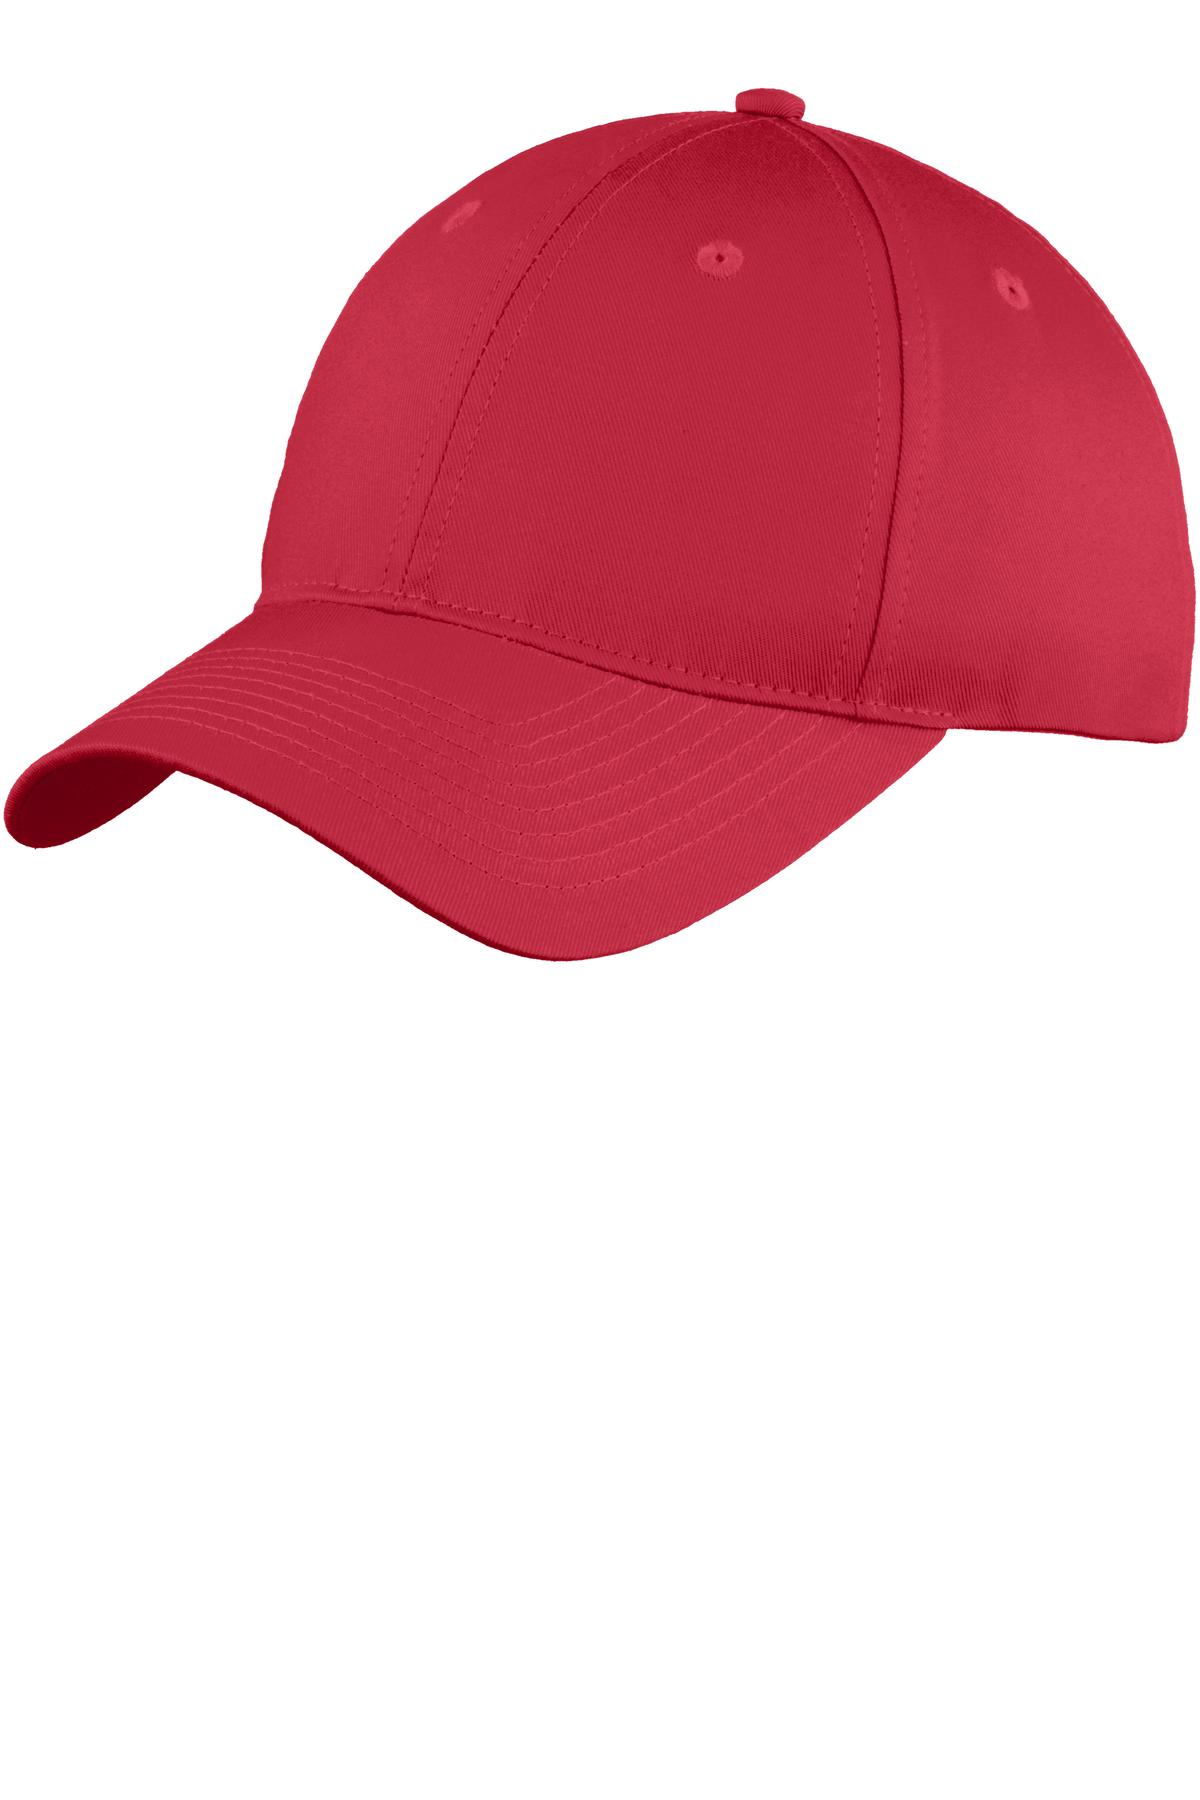 Port & Company ®  Six-Panel Unstructured Twill Cap. C914 - Red